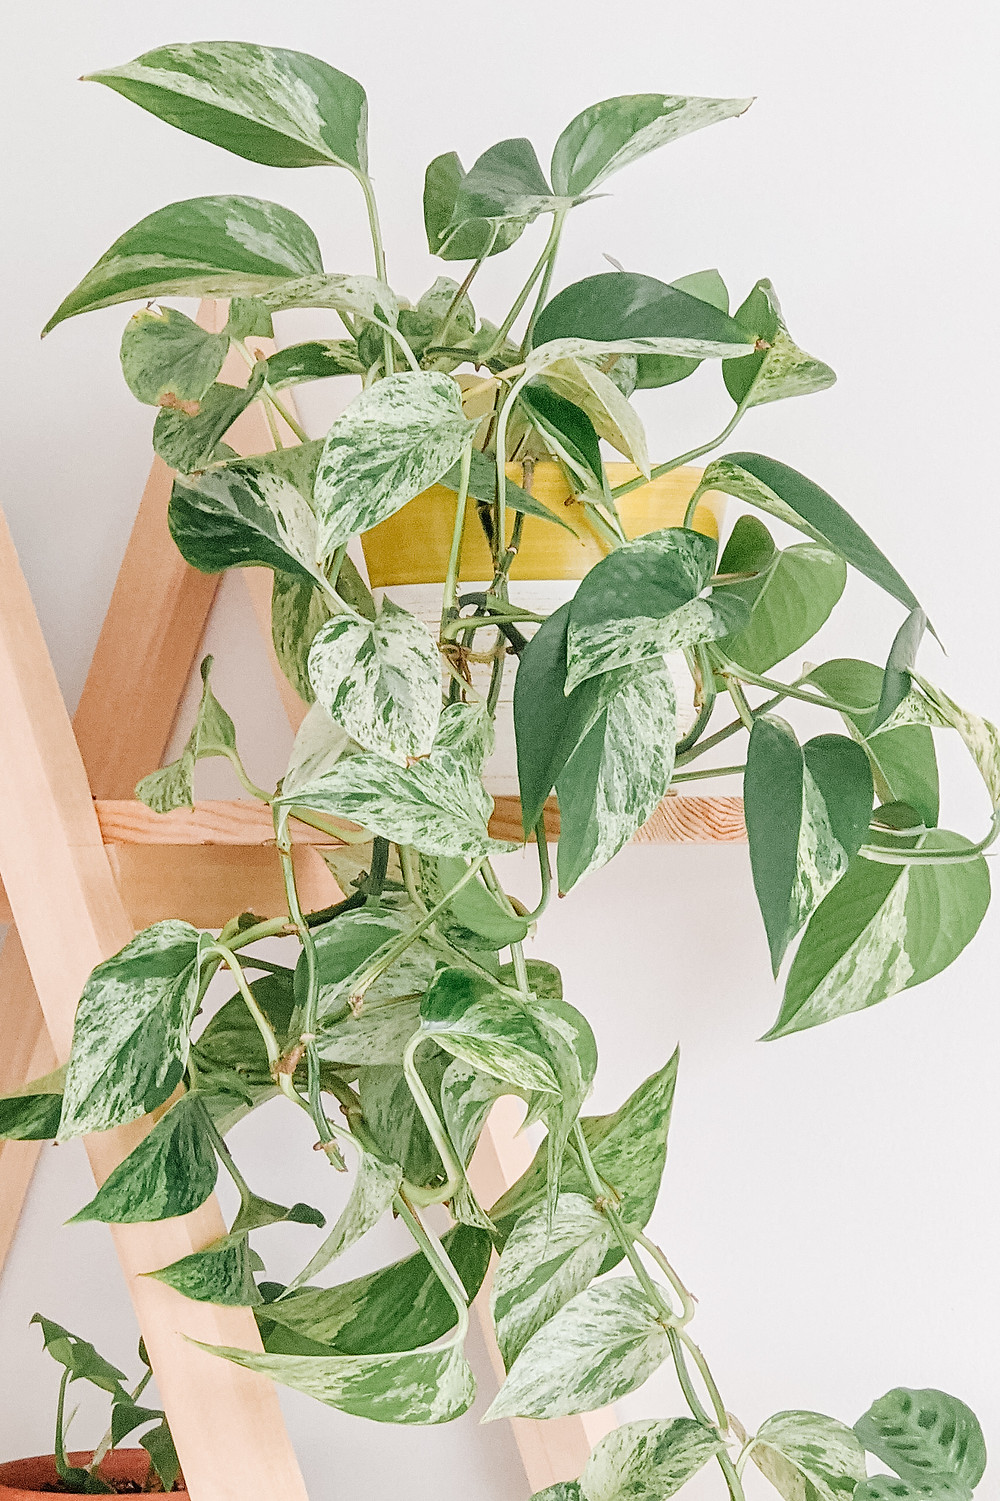 Marble Queen Pothos with Green and White Leaves